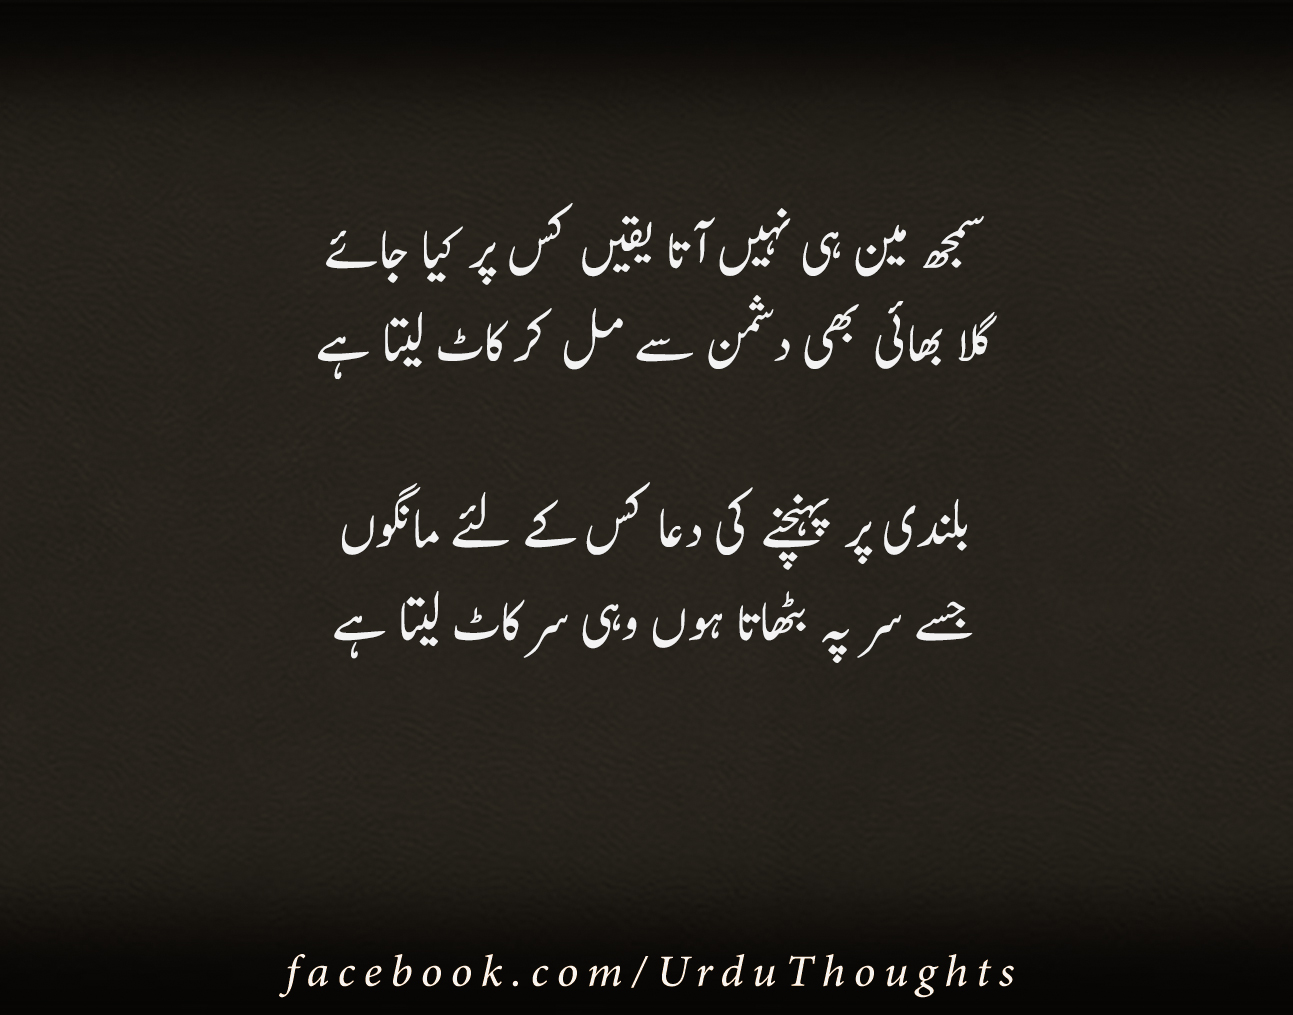 Mix Urdu Poetry Images With Black Background Urdu Thoughts